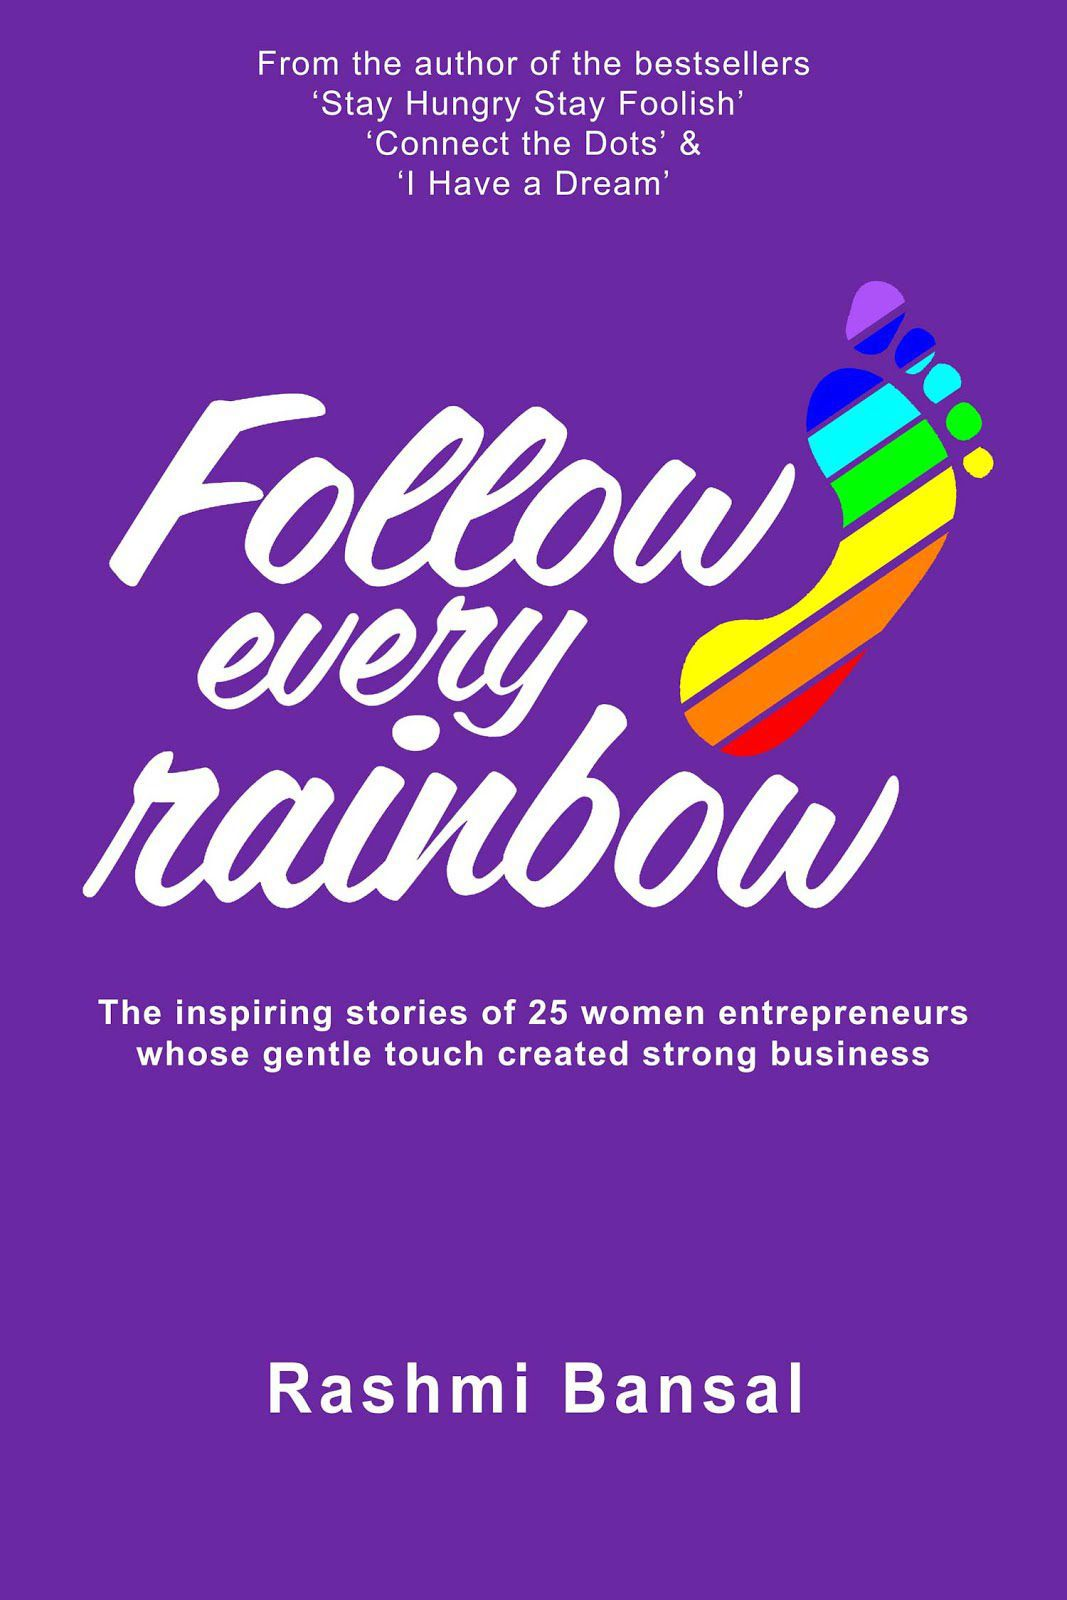 follow-every-rainbow1_review